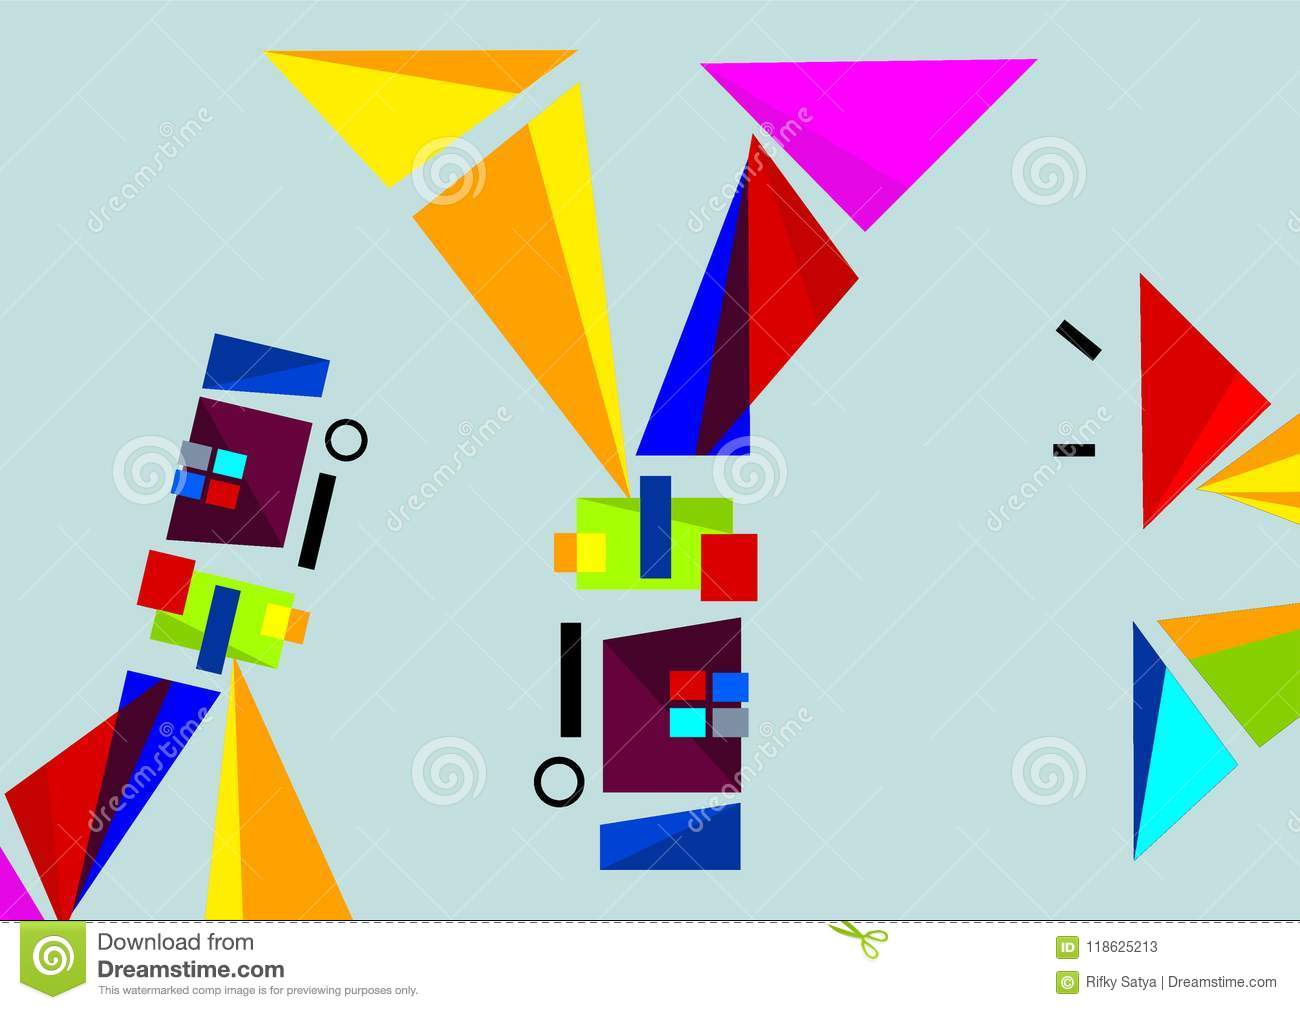 Visual Technology And Shapes Design Stock Vector